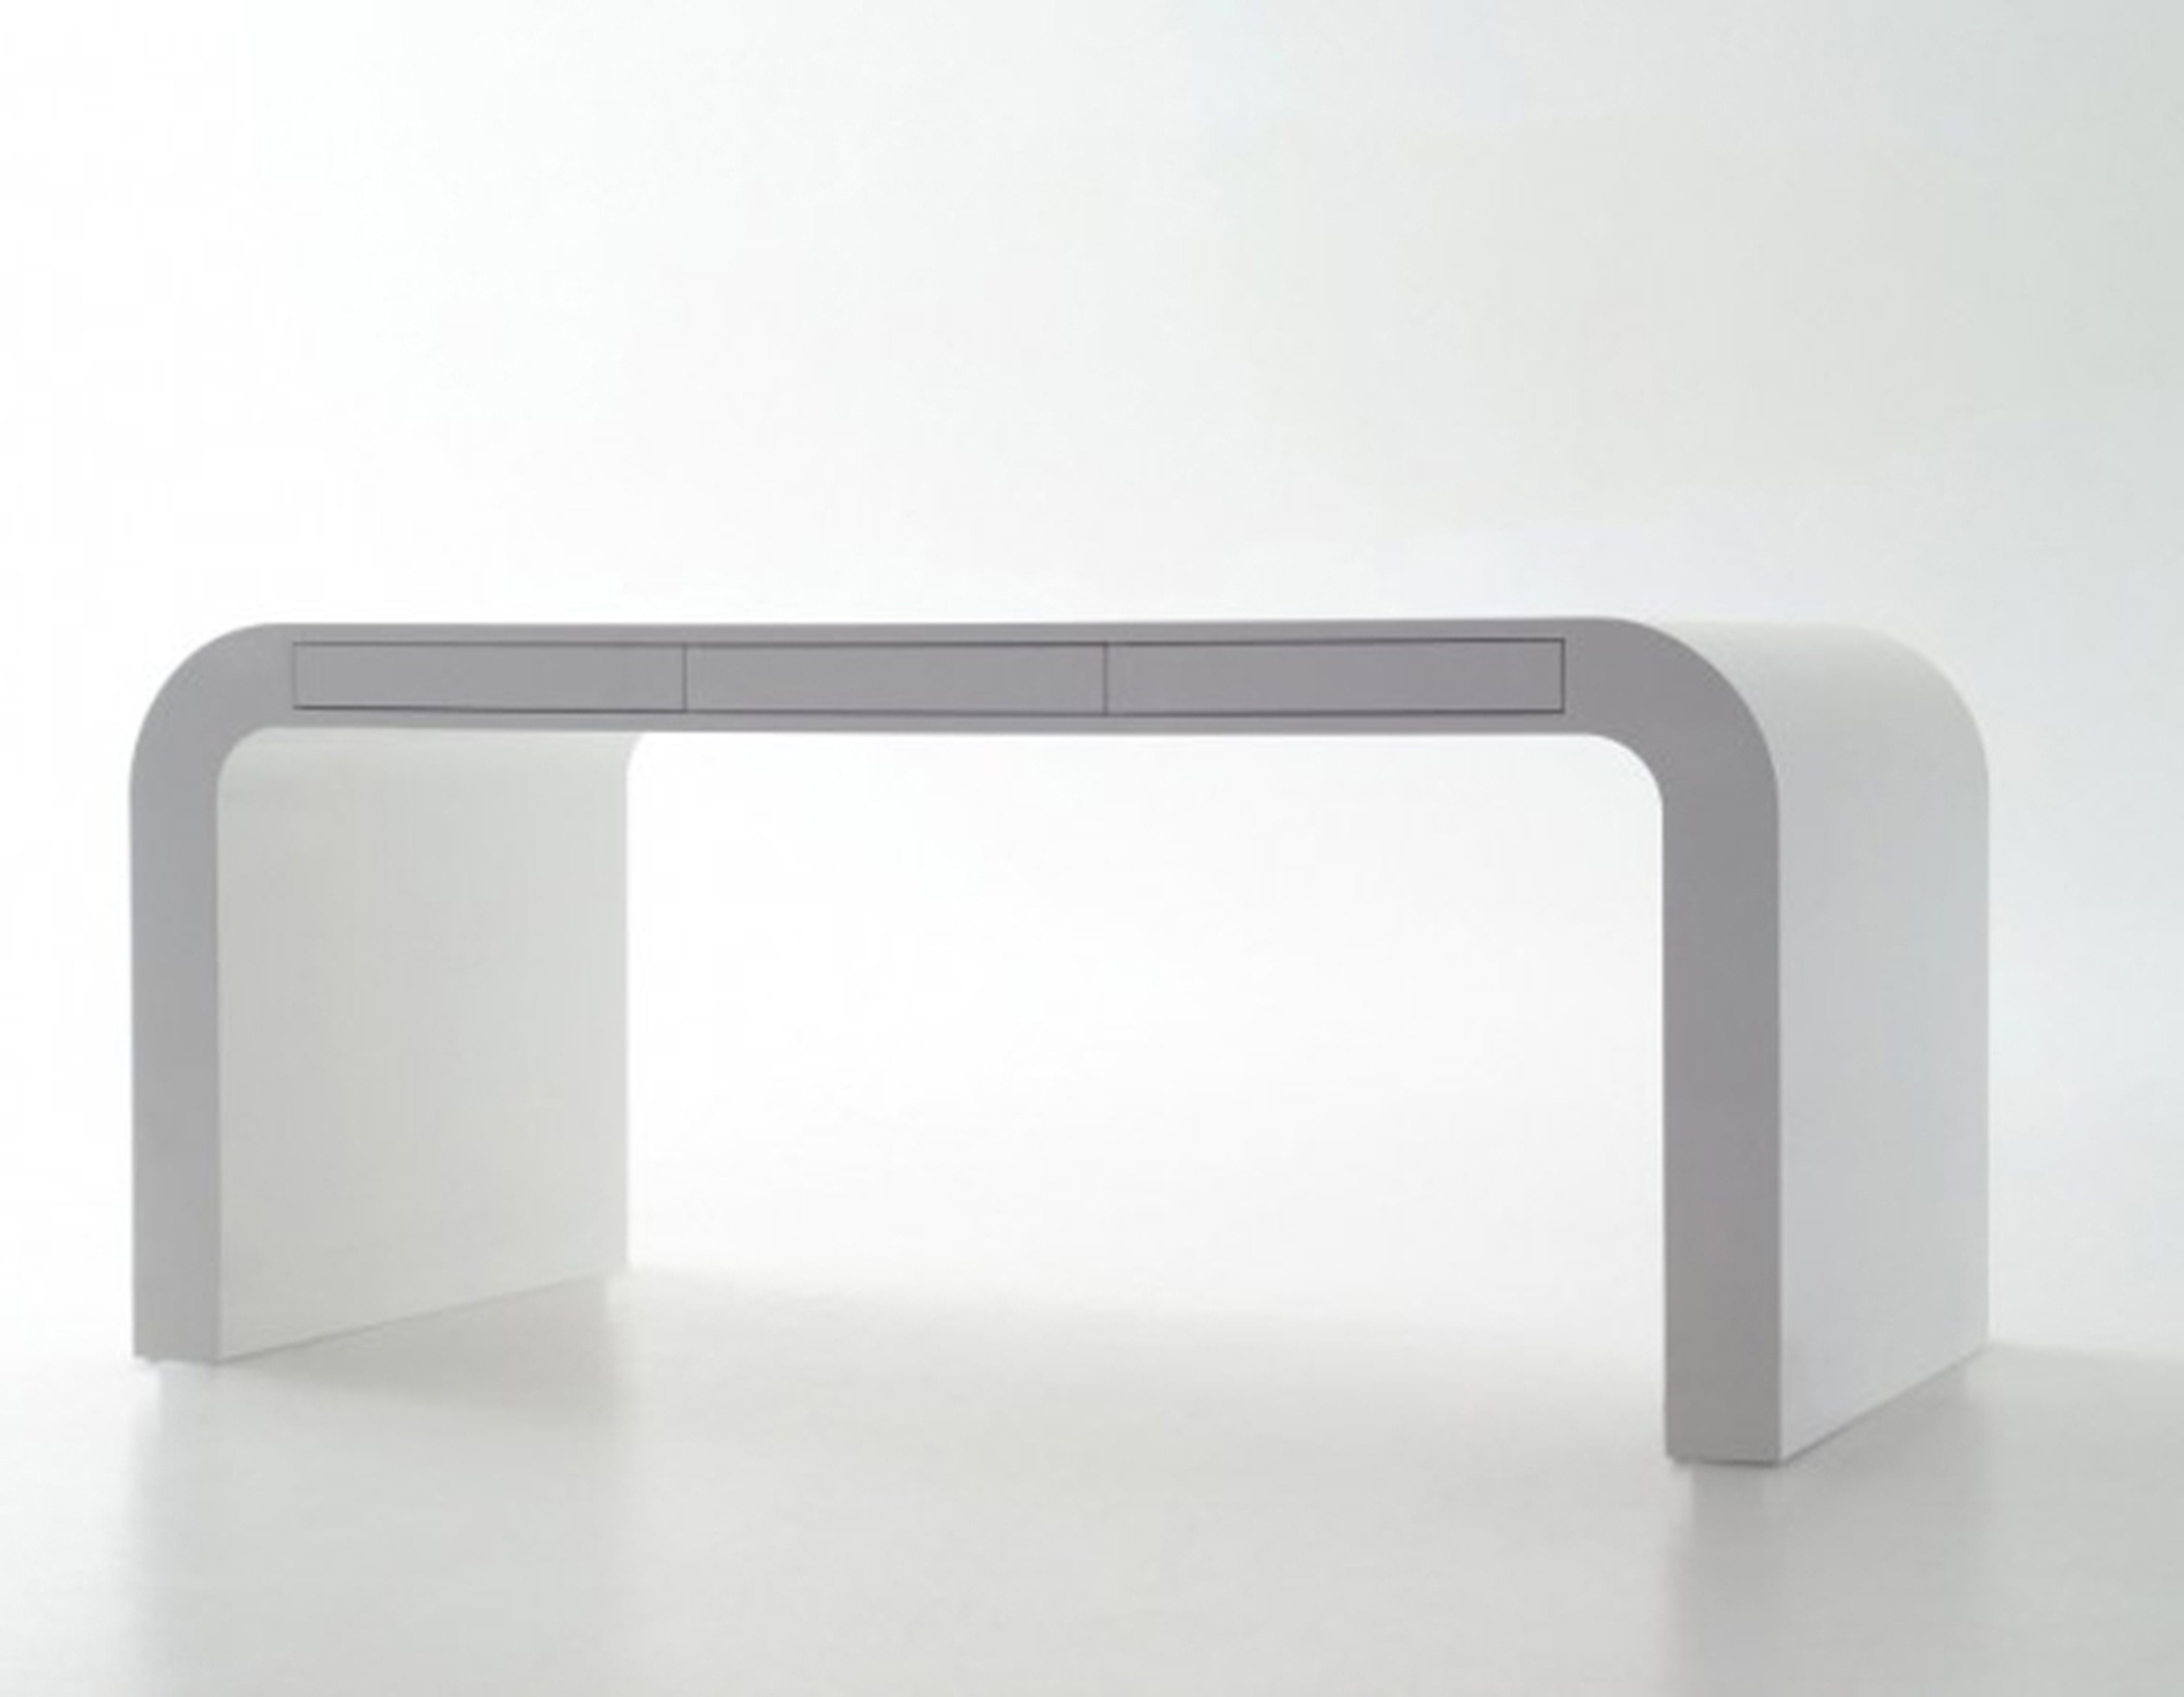 Graceful Modern Home Office Desk Design Idea In White With Drawers Fabulous Modern Home Office Desk Design Ideas (View 5 of 30)